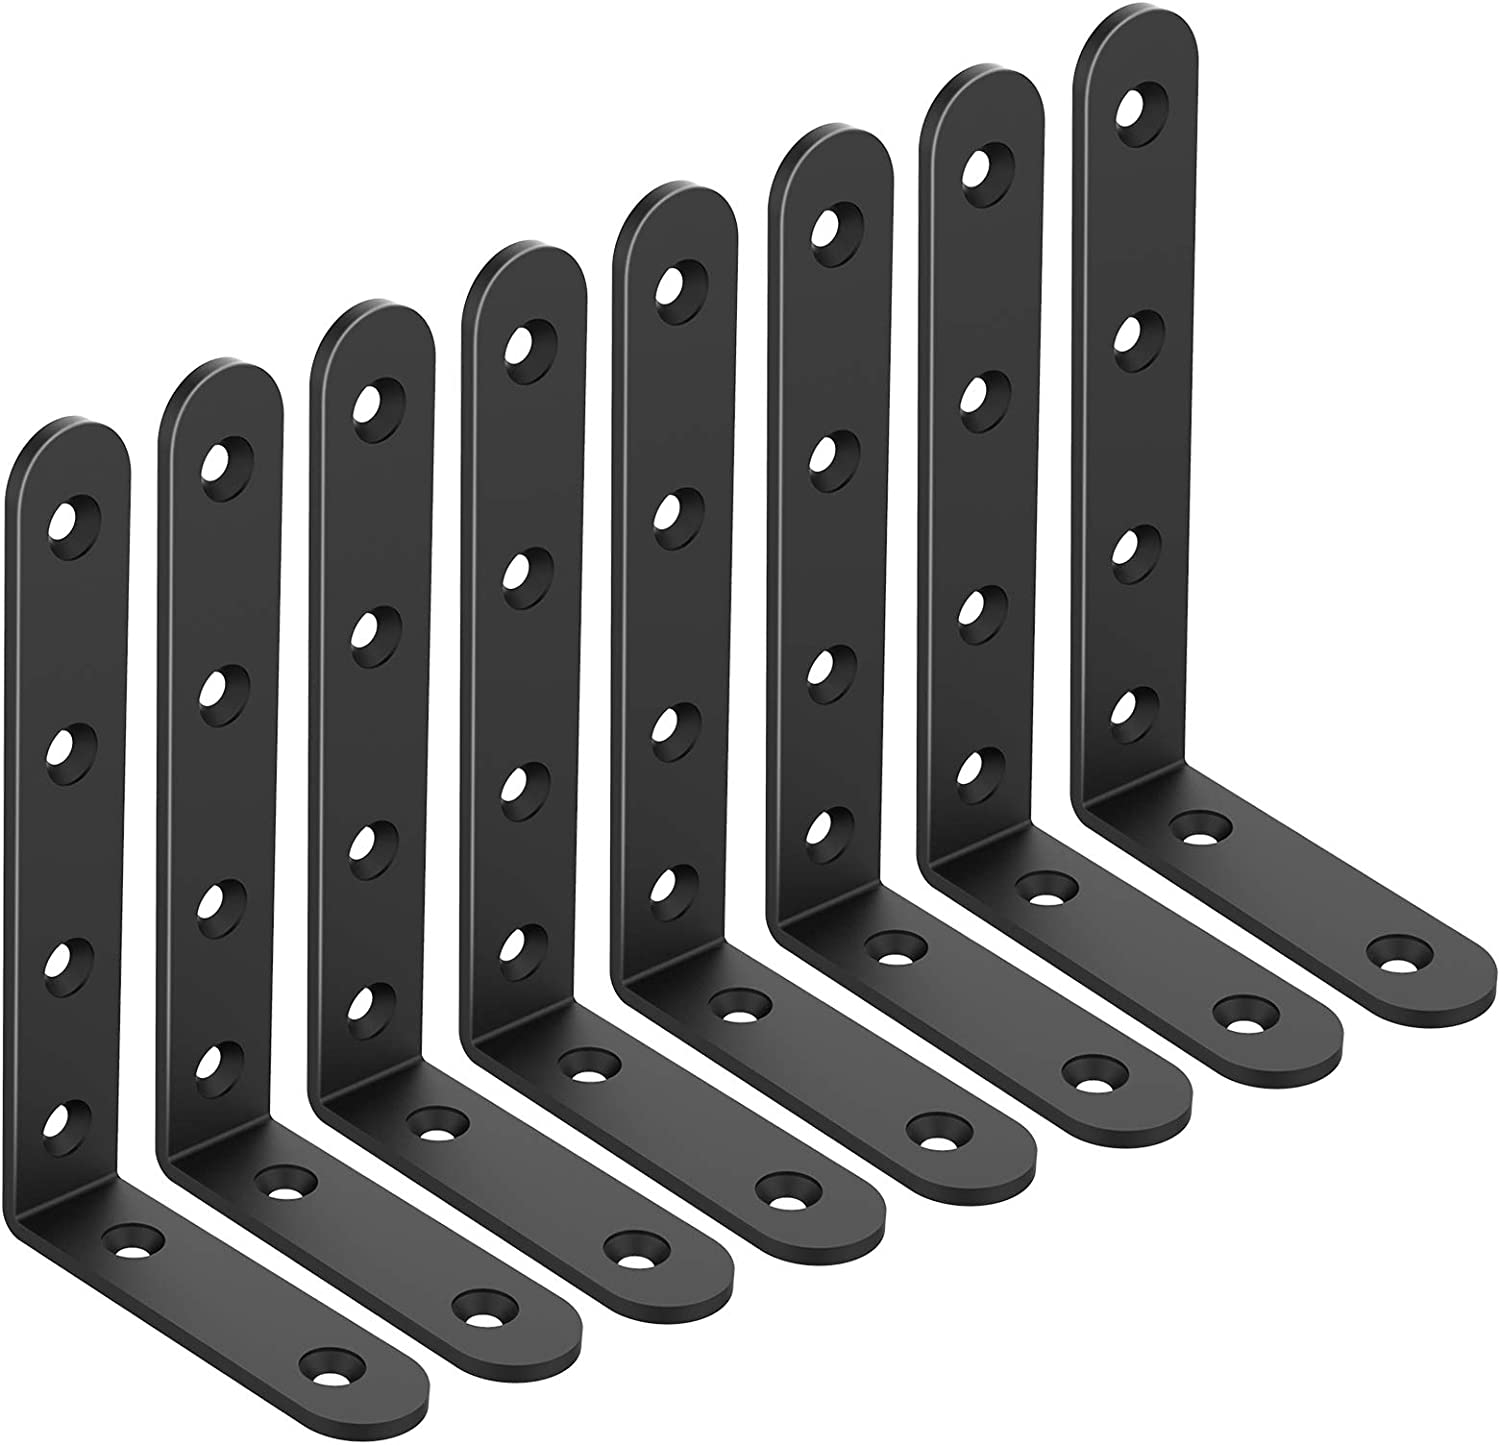 Shelf Brackets Corner Brace Black Steel L Brackets for Shelves Decorative Wall Mount Joint Angle Brackets for Shelf with Screws - 16 Pack (5x3 inch-8 Pcs)